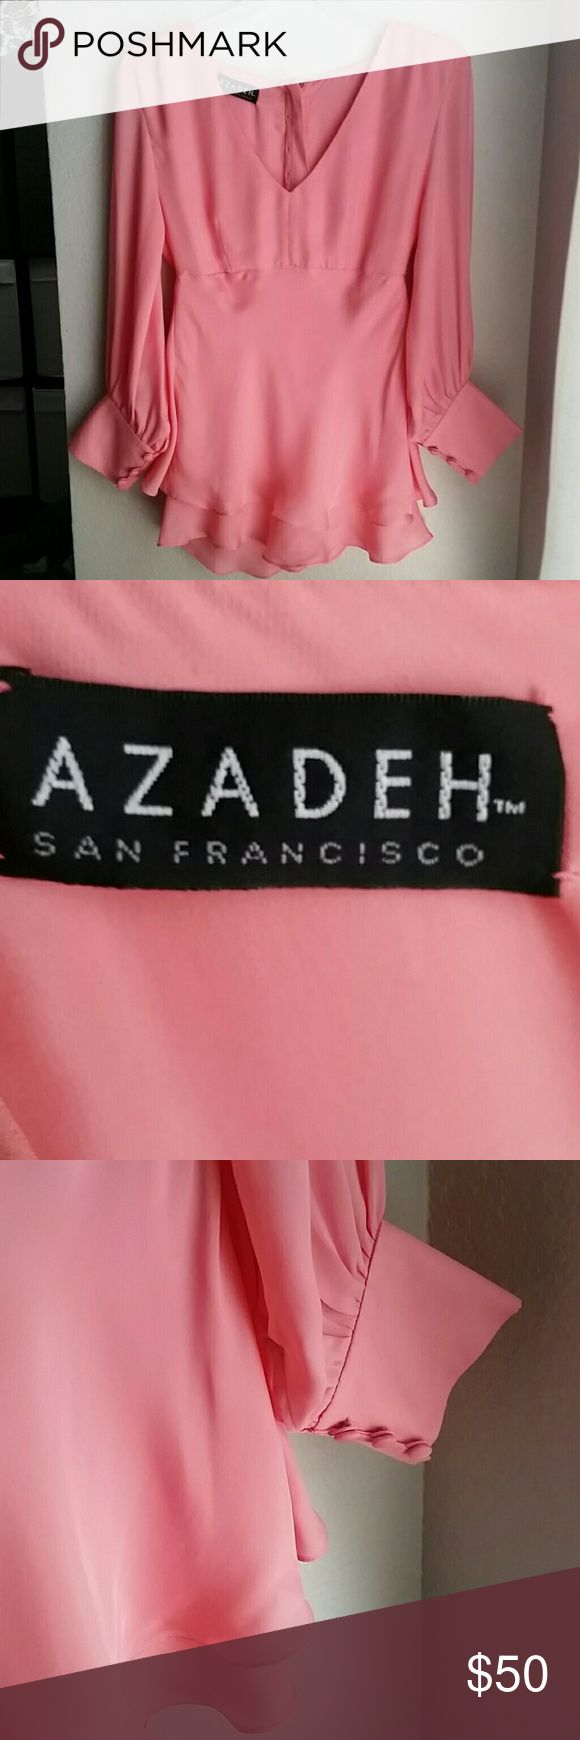 Azadeh Couture Coral Blouse - S/XS Excellent condition Azadeh of San Francisco coral blouse. I could not find any rips, holes,  or stains. There is no size tag or material tag, but I belive it is silk, as the material feels and behaves like silk (a few very minor pulls like silk tends to do). It measures approx. 27 inches from shoulder to bottom hem, 16 inches across the chest, and 14 inches at the waist. It's small, like a 2 or 4. Buttons up the back, no zippers. Please ask questions and…